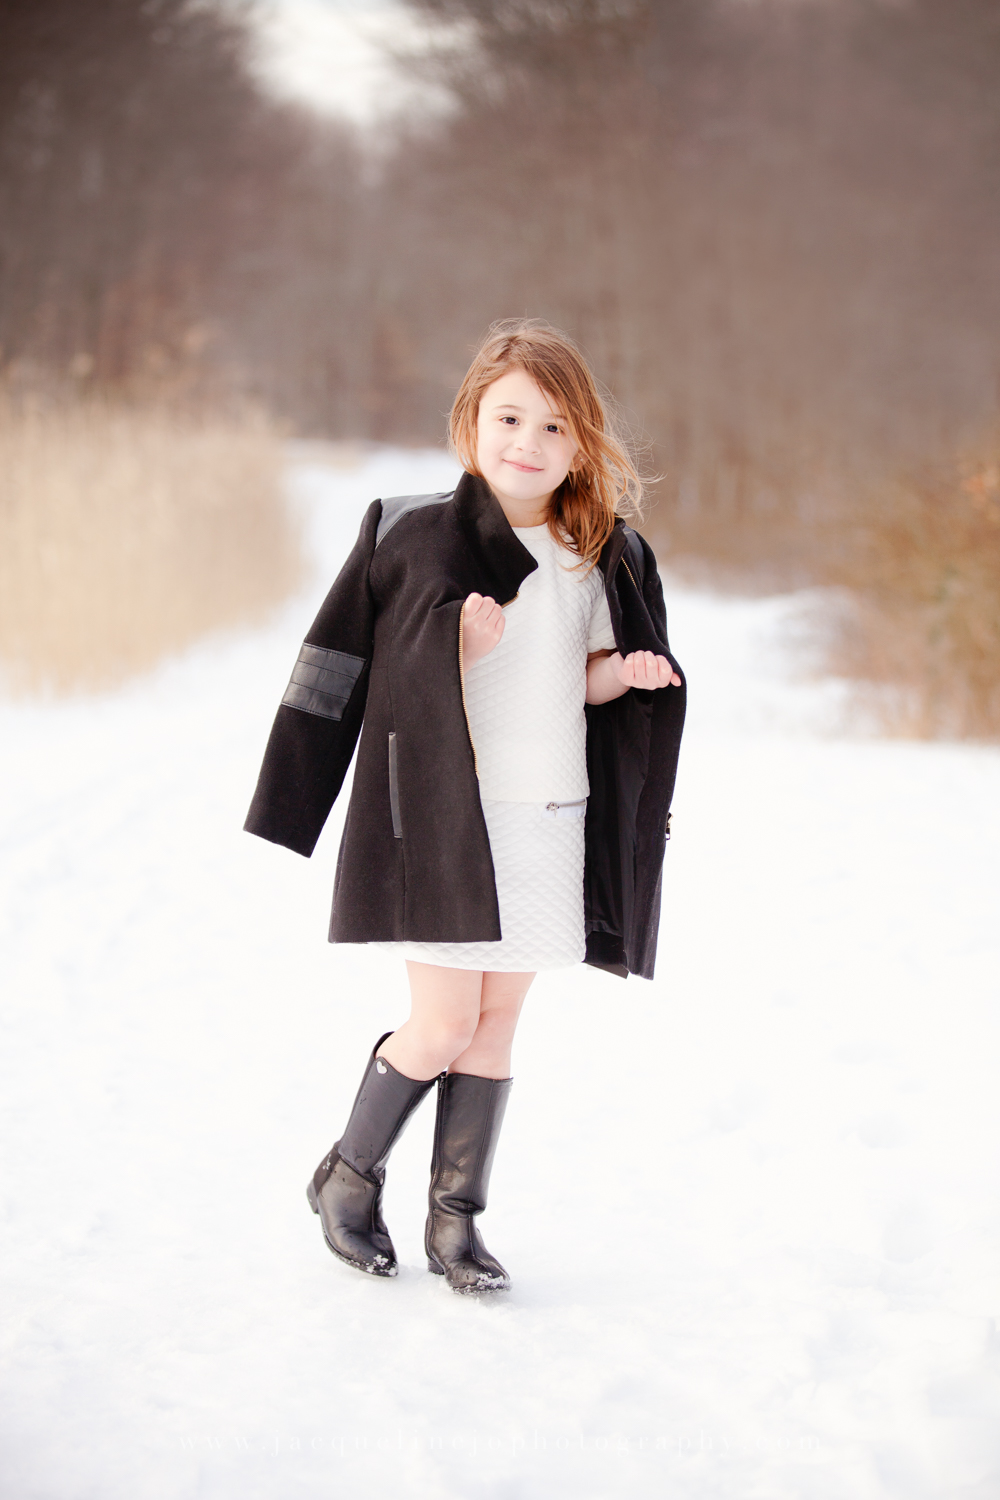 madison-nj-child-photography-styled-winter-shoot.jpg